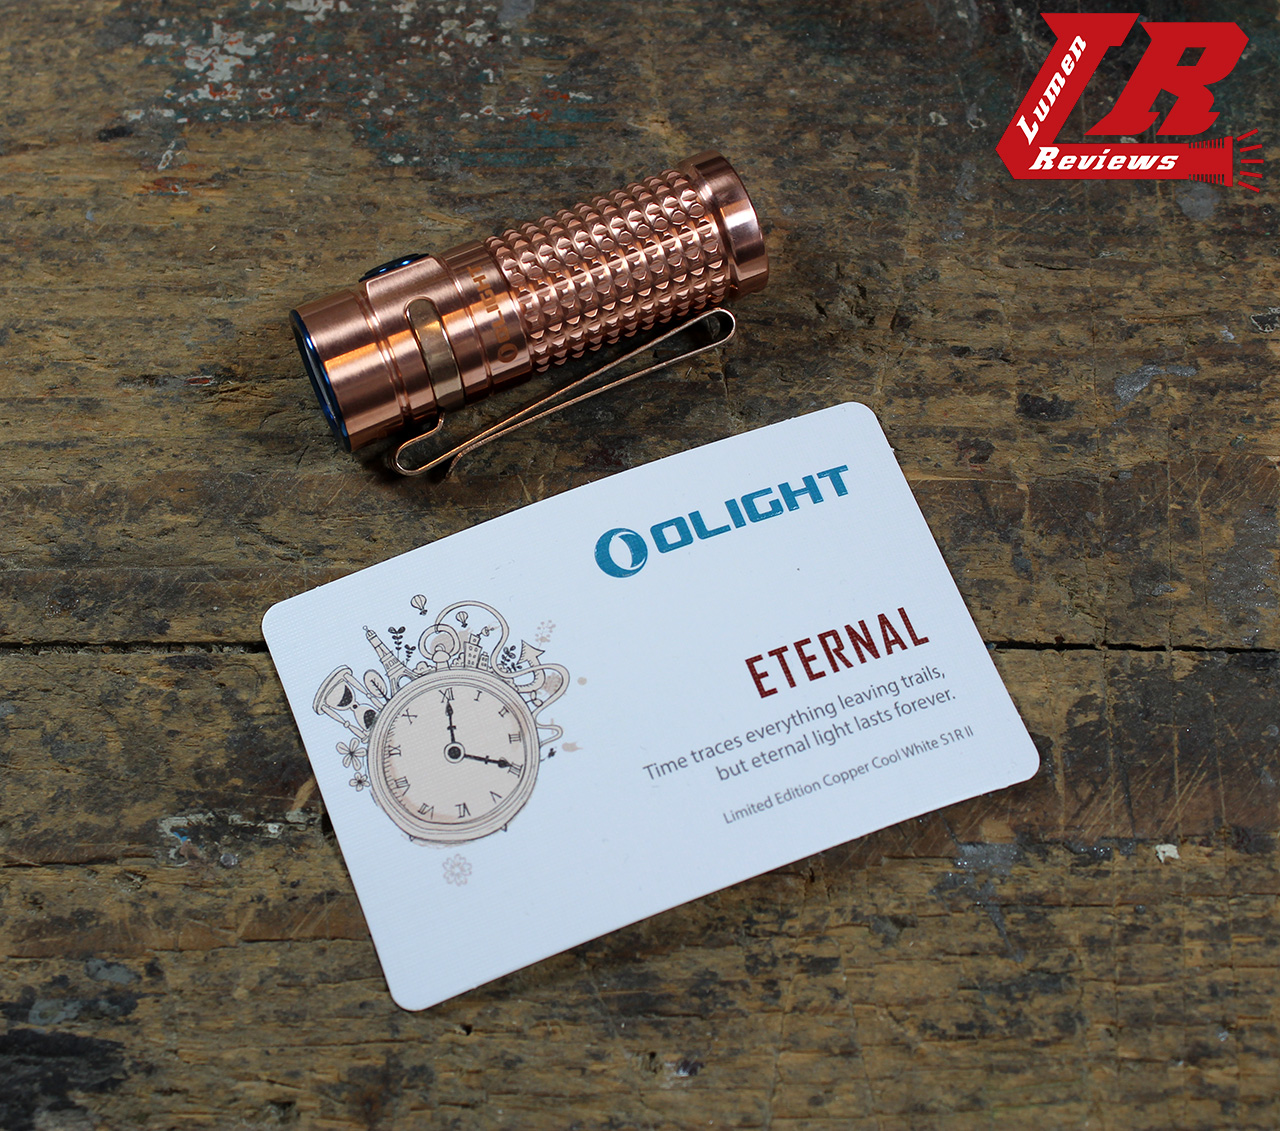 Review Olight S1r Baton Ii Cu Limited Edition Copper